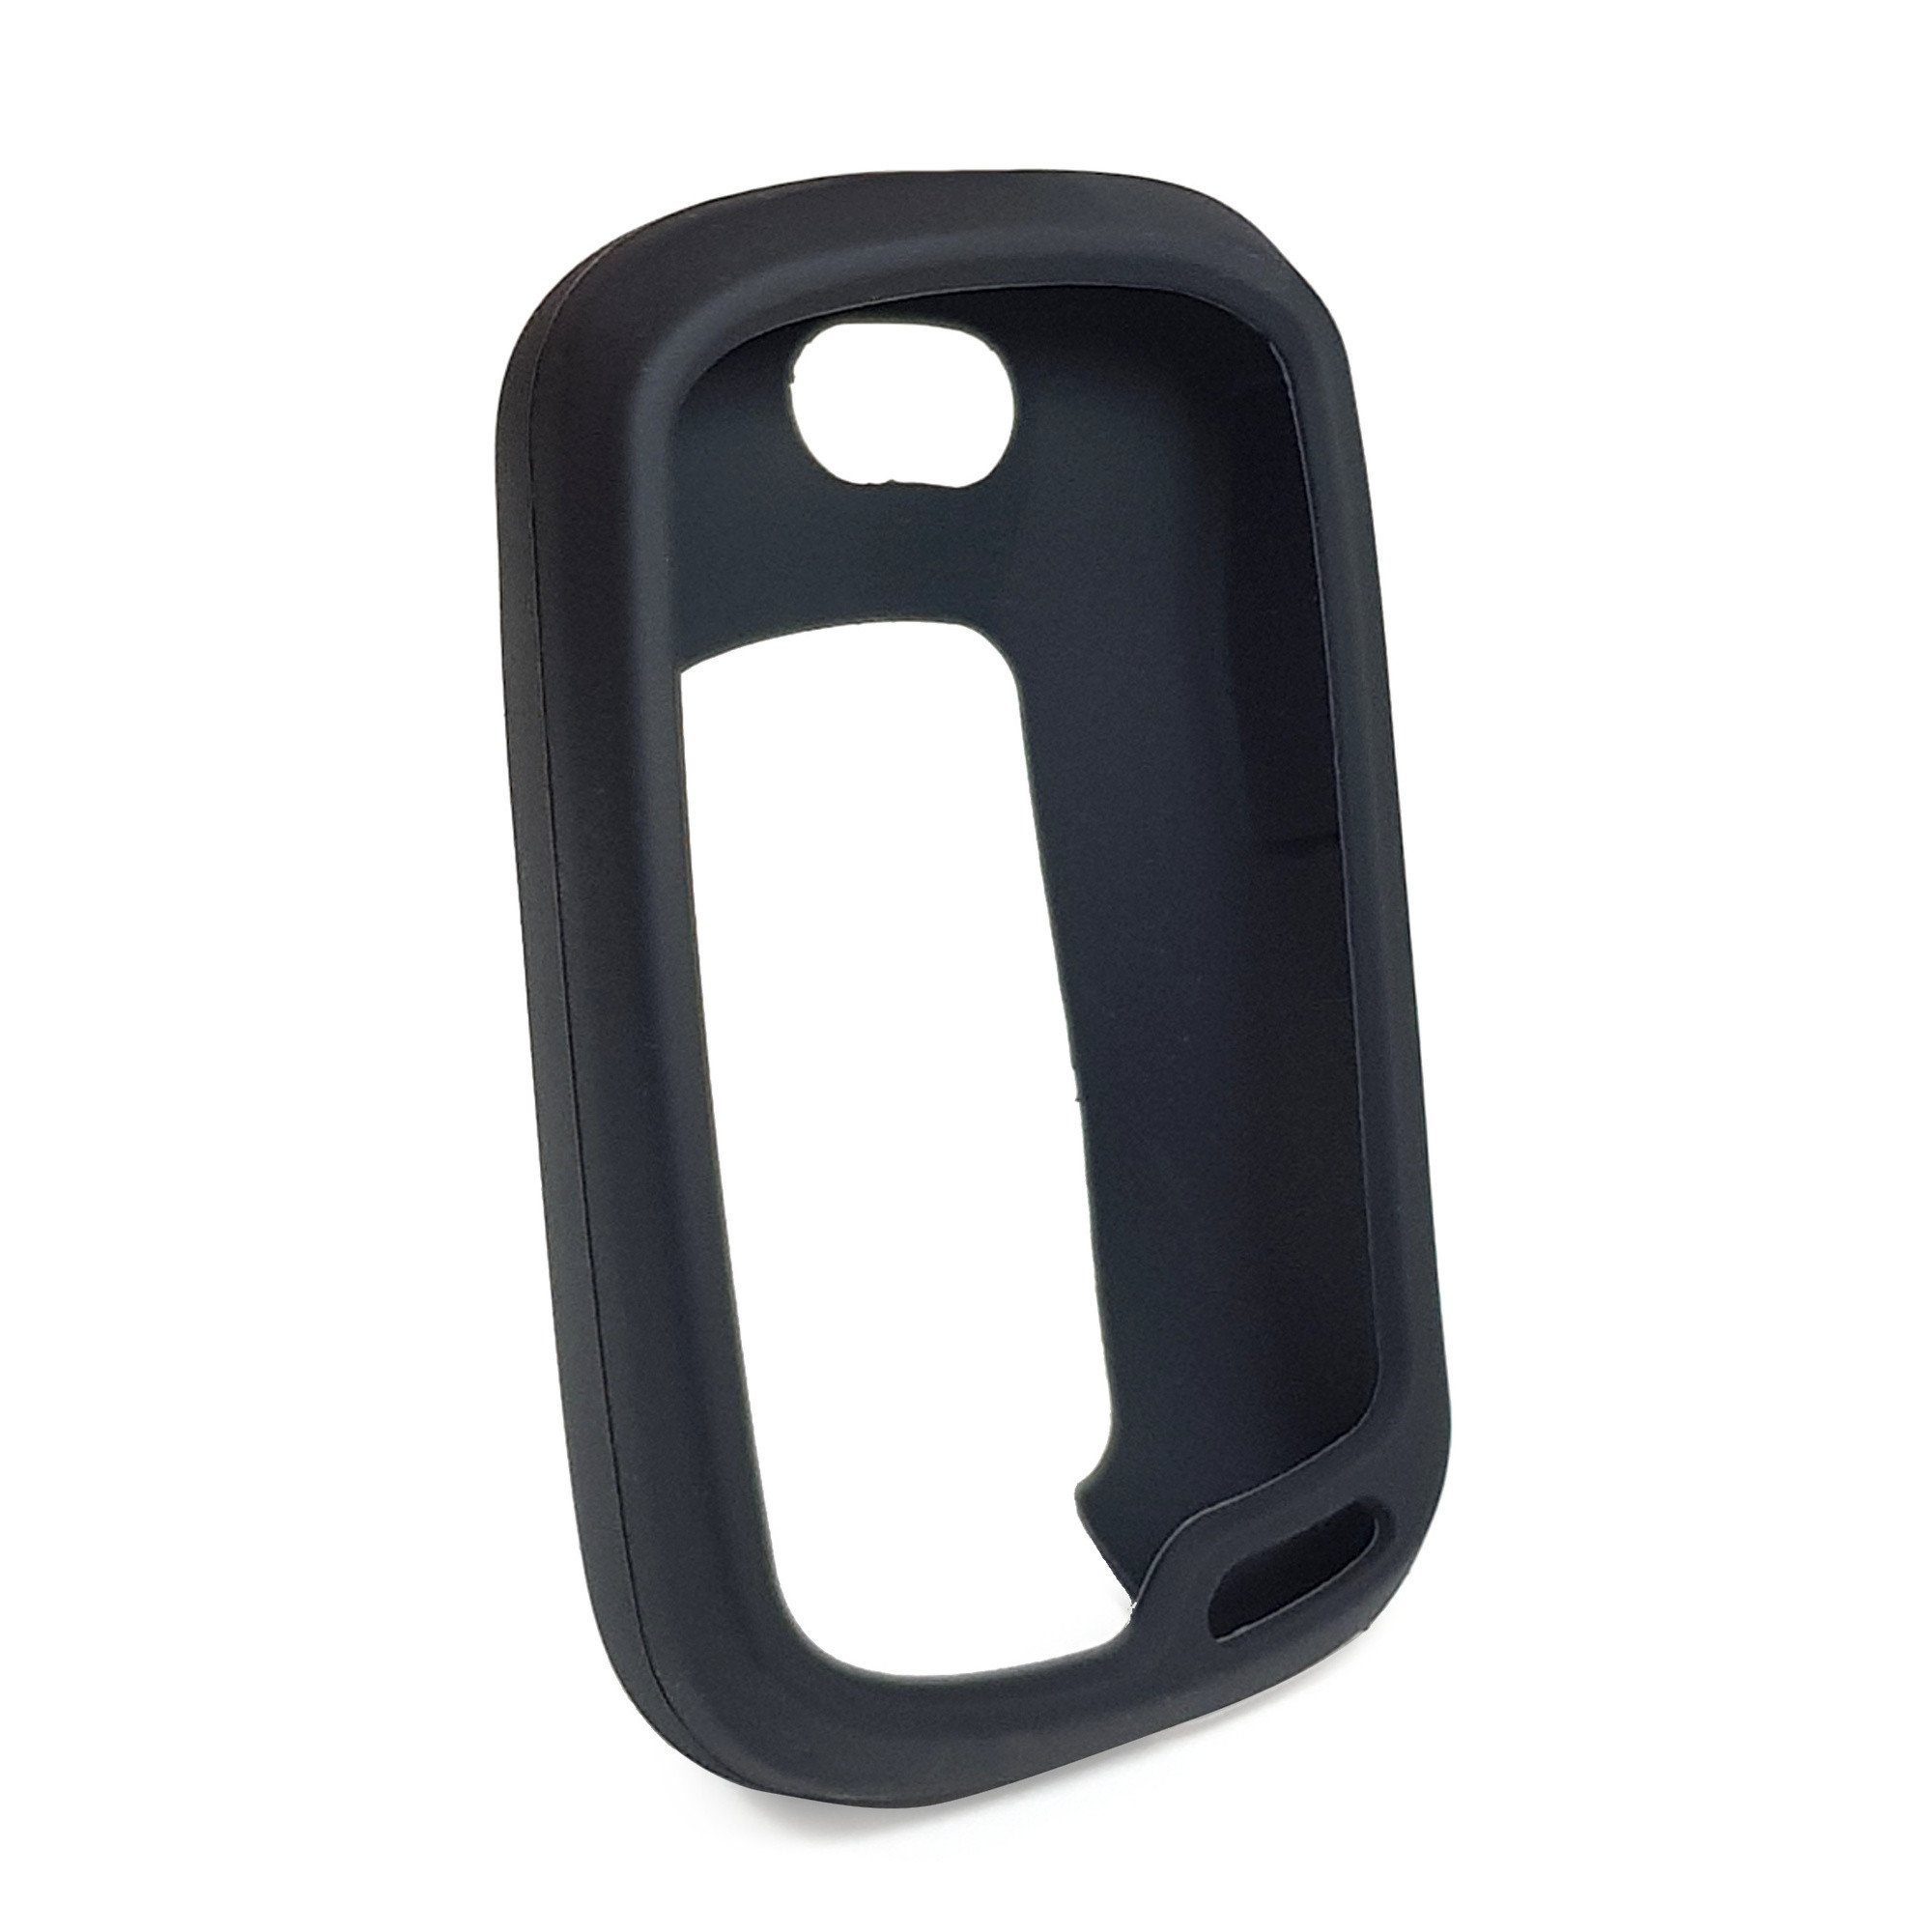 Tuff-luv Protective Silicone Gel Skin Case Cover for Garmin Oregon 700/750T GPS - Black